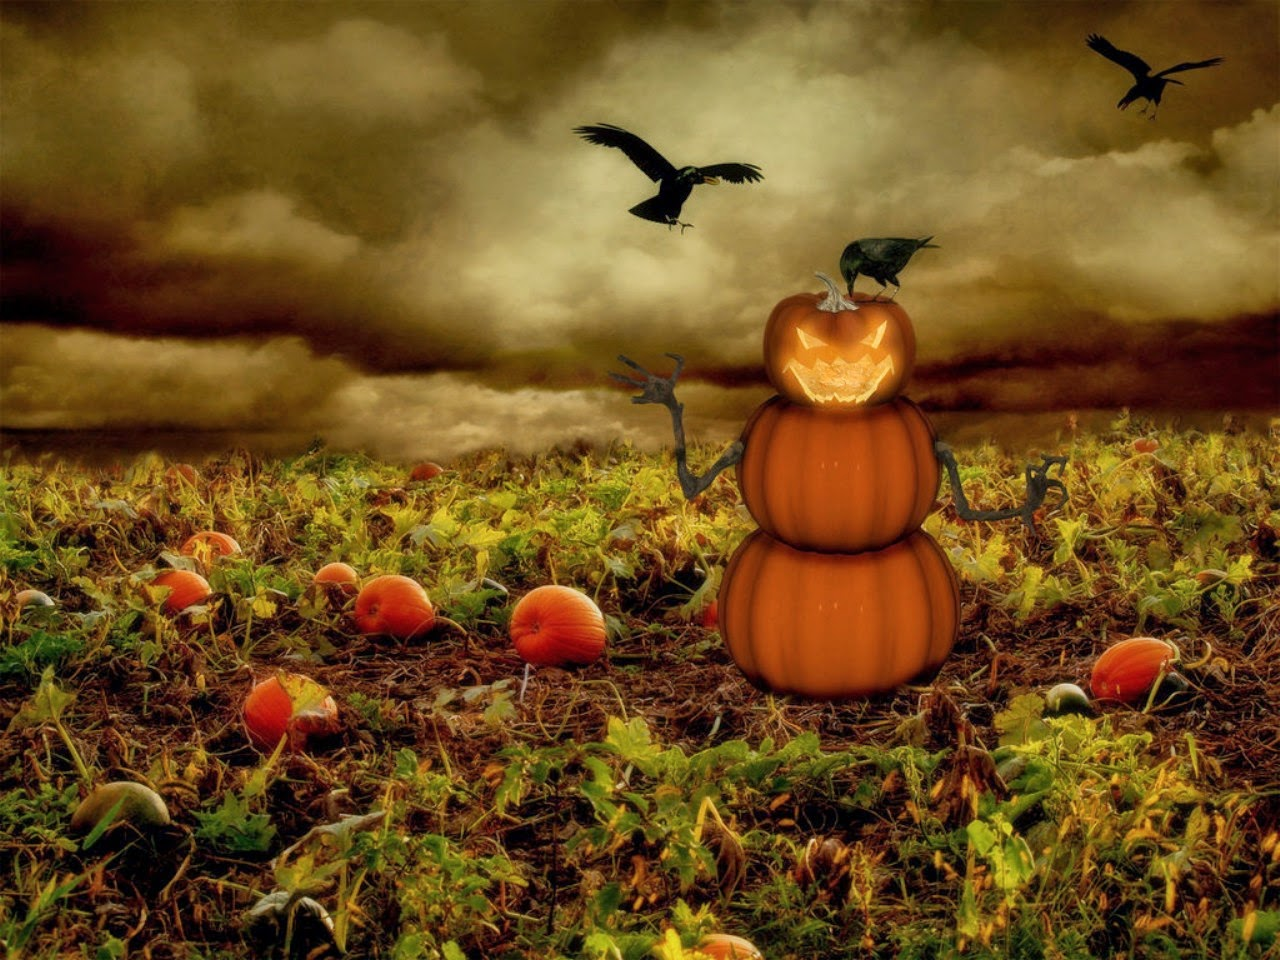 pumpkin-decoration-with-crow-for-halloween-HD-photography.jpg